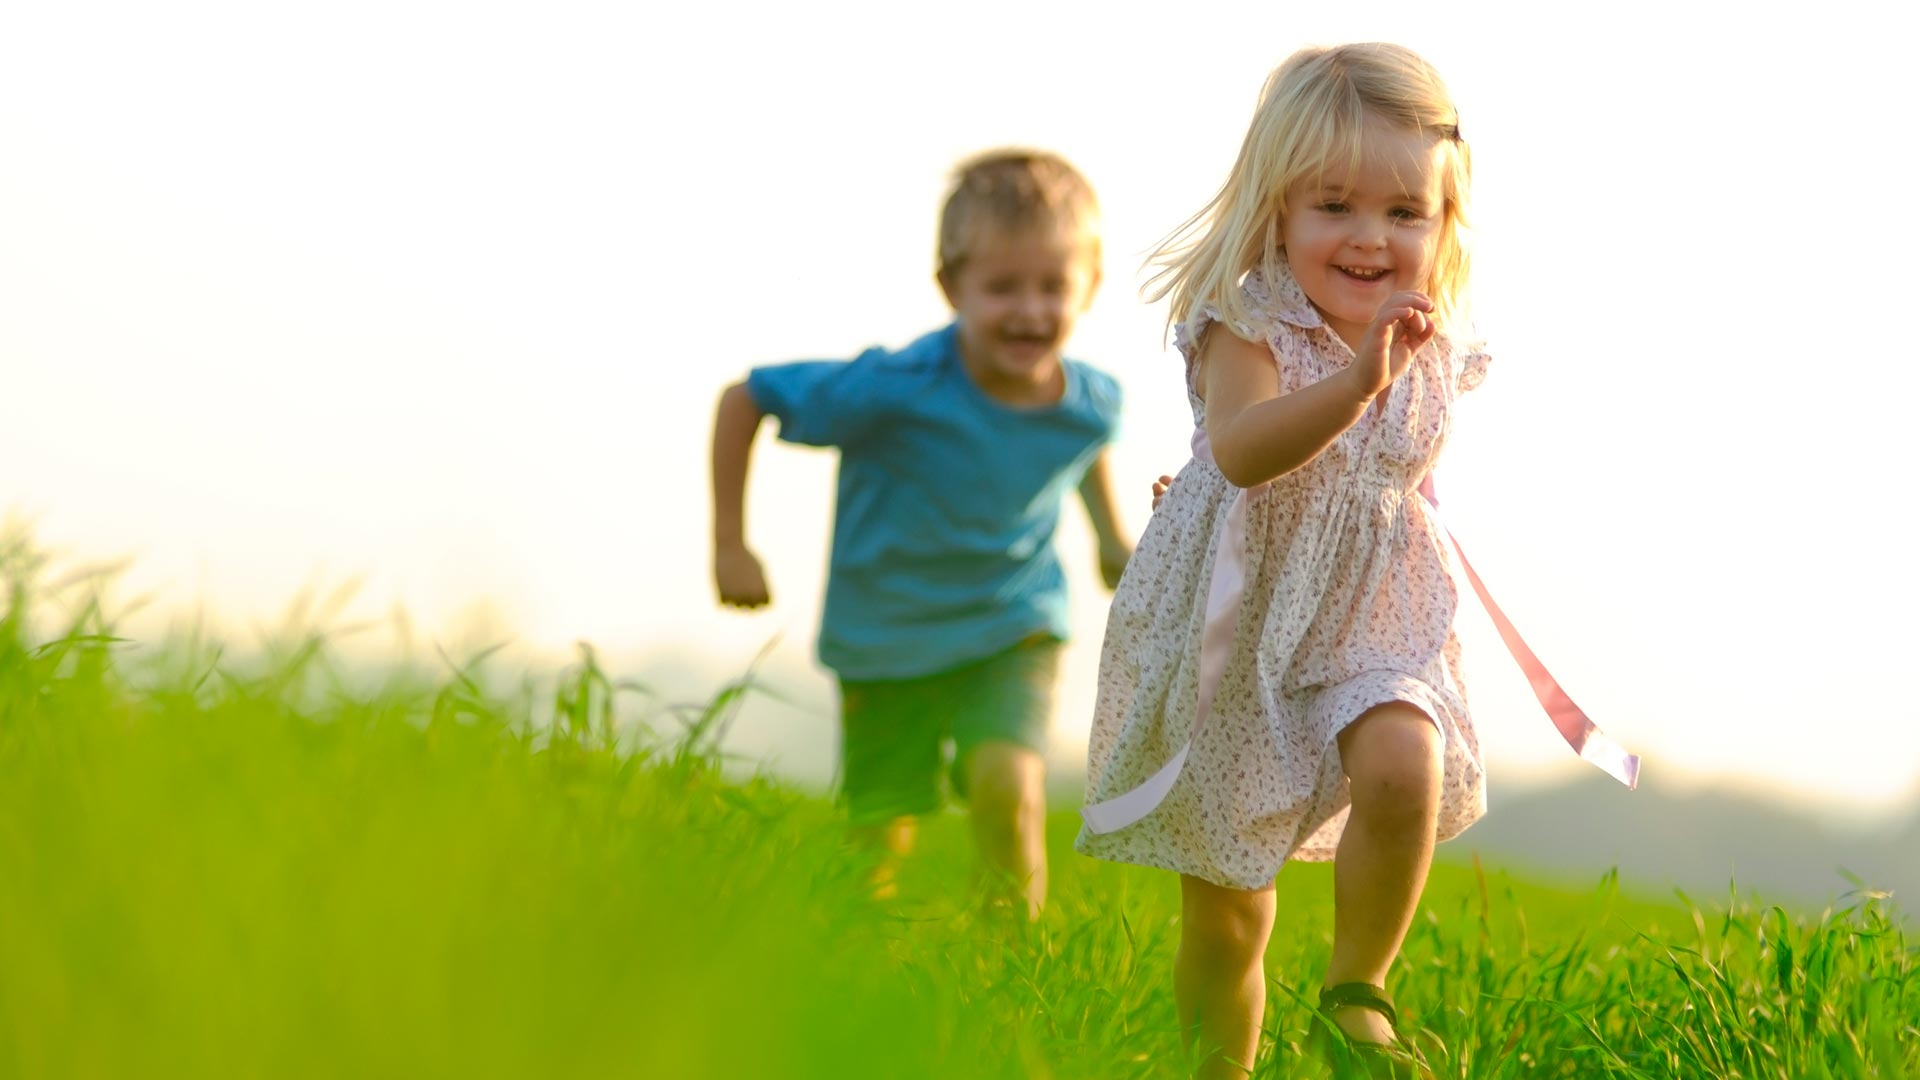 hd wallpaper kids chasing wallpapers55com best wallpapers for pcs - Images Kids